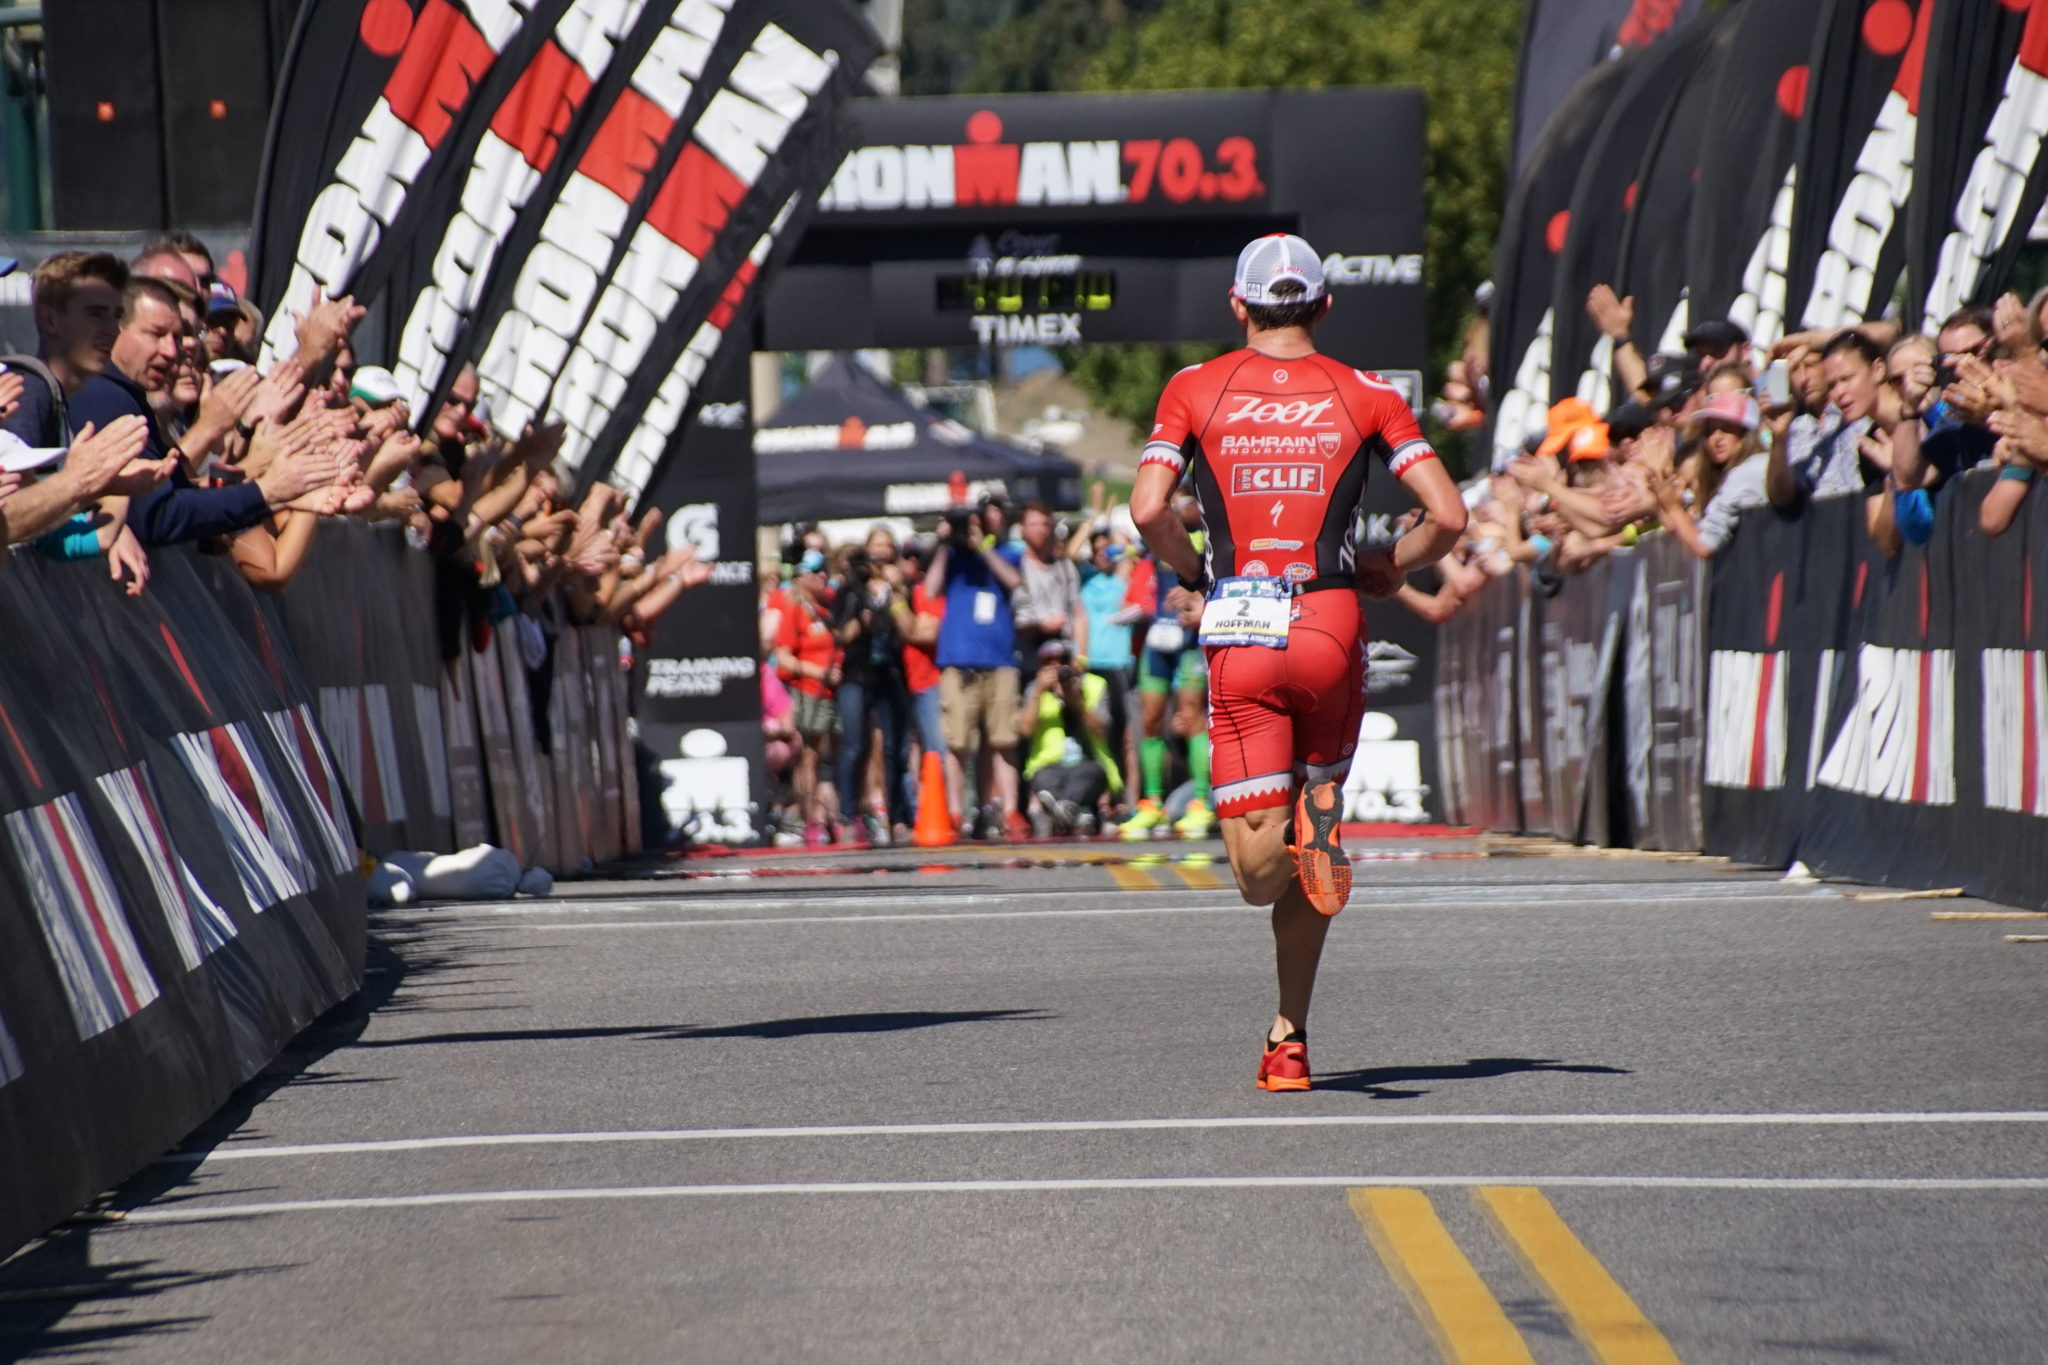 No matter how a race goes, the finish chute is always a special moment. Photo by Sue Hutter